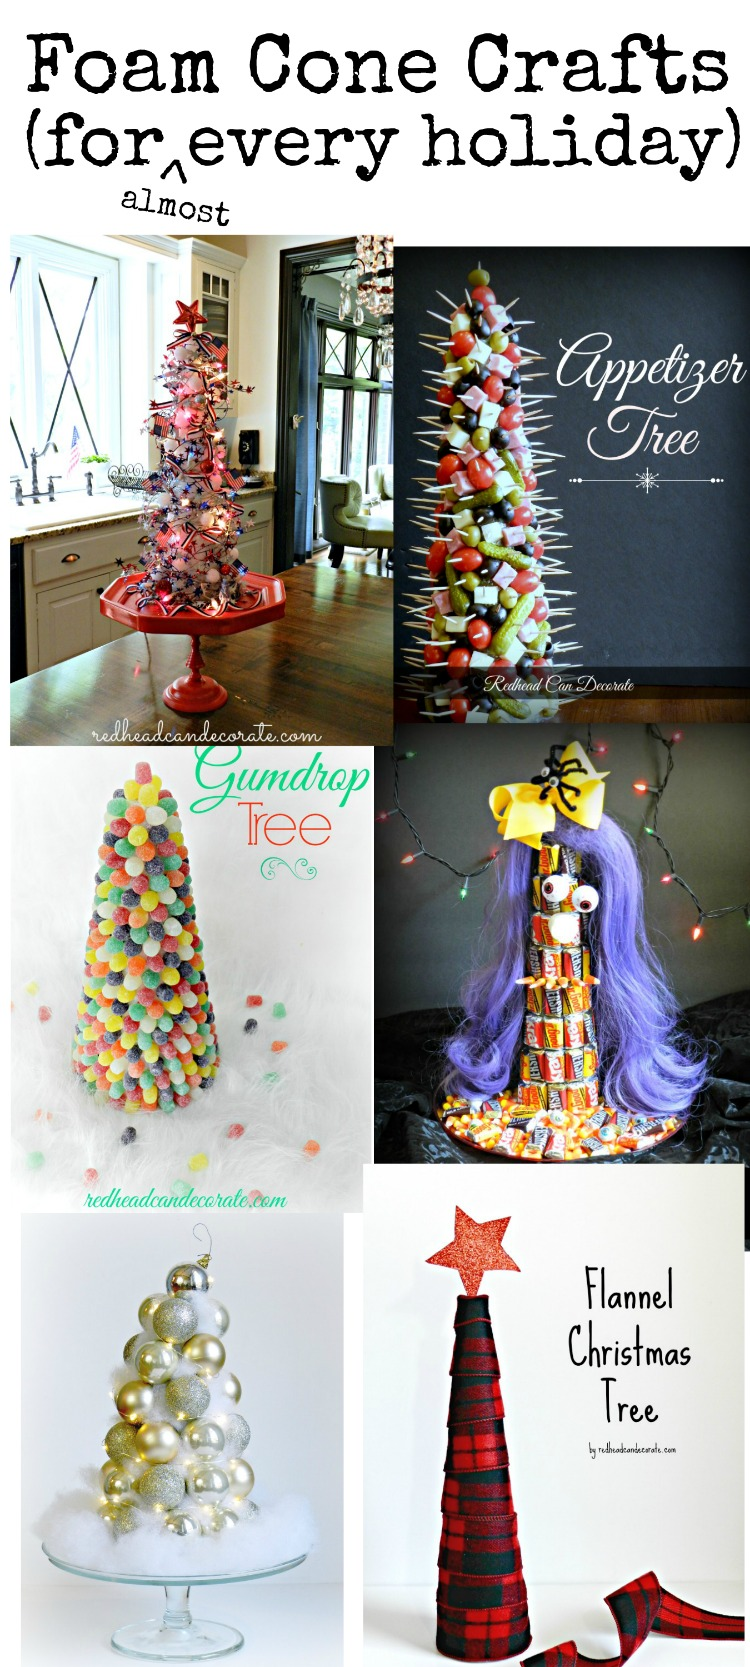 Foam Cone Holiday Crafts